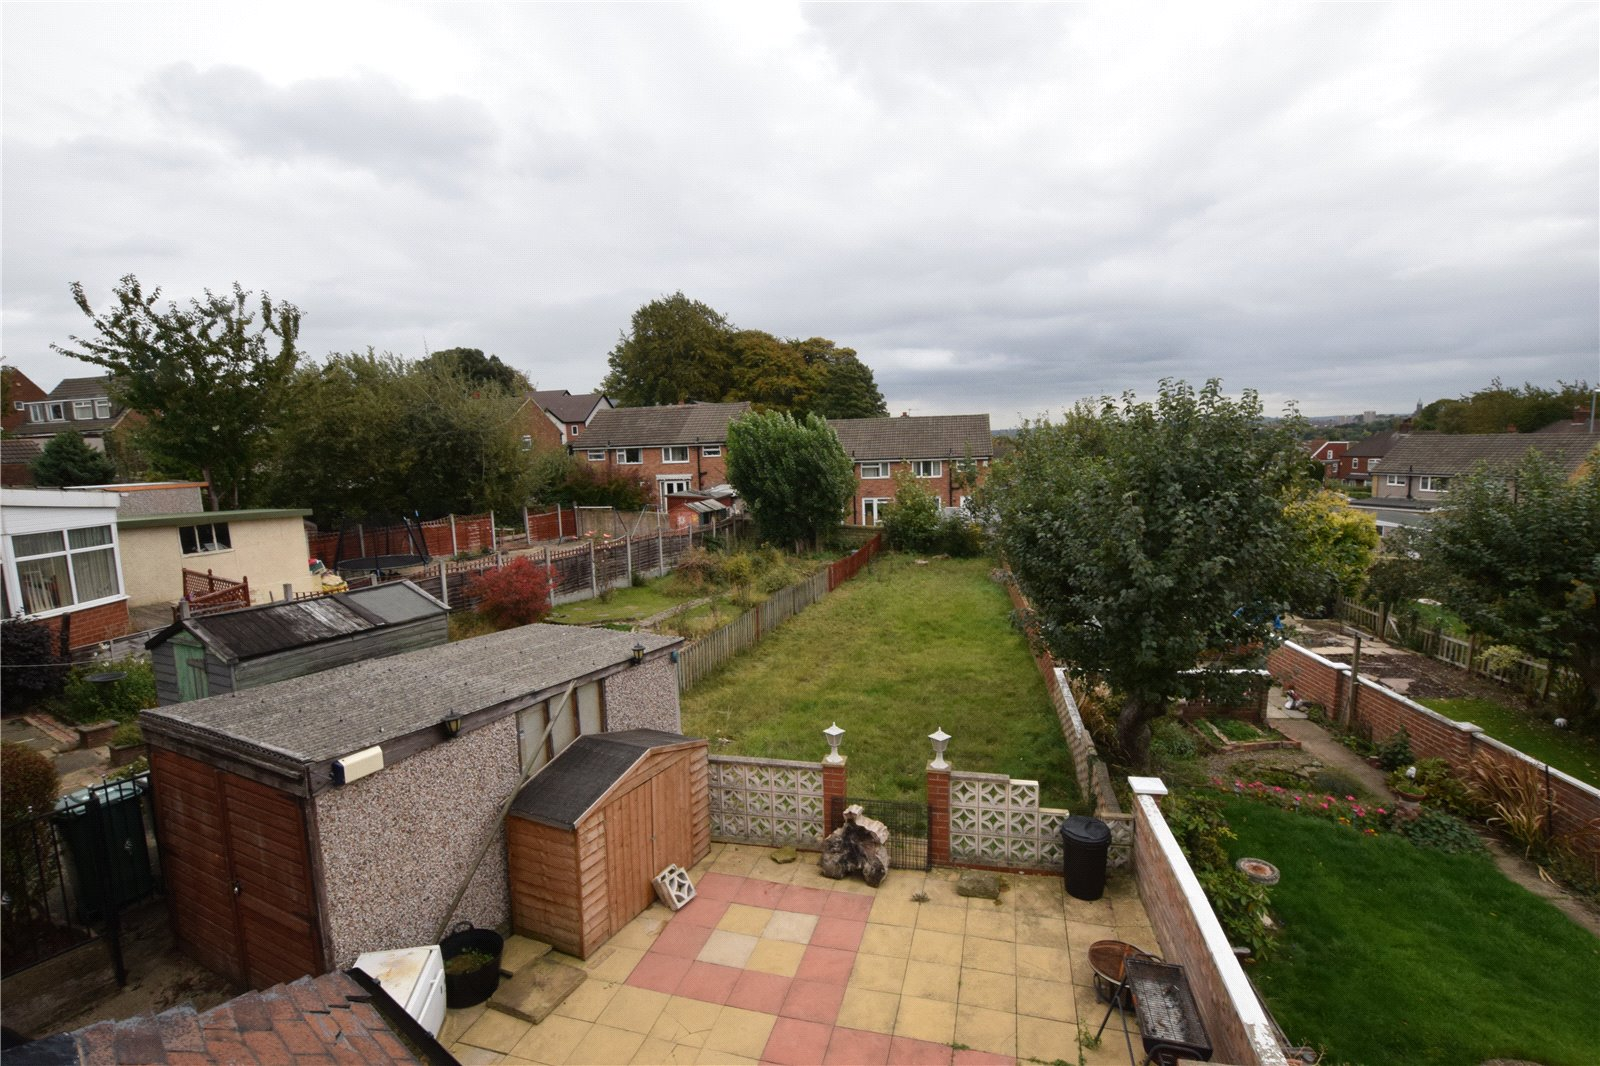 property for sale in Leeds, exterior view from rear window